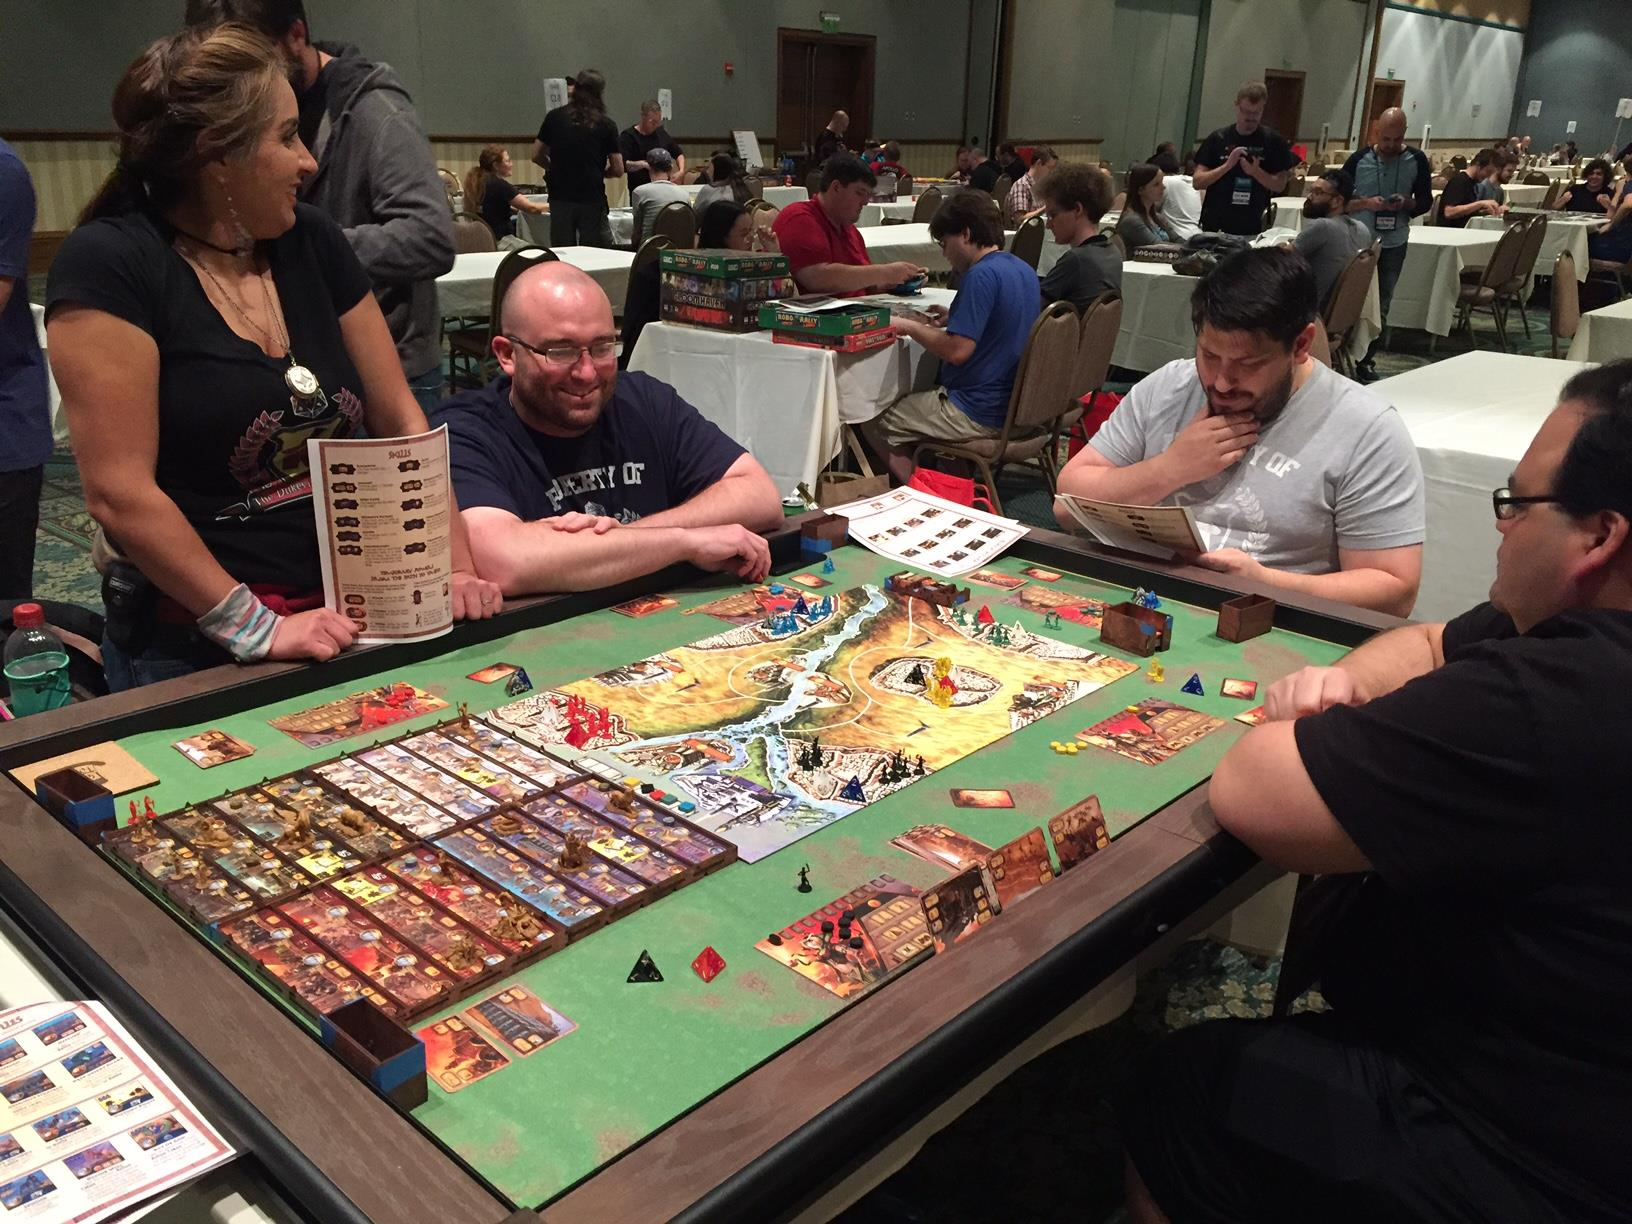 mortals for woodworking table sincock samuel img vault mere posted the game board by